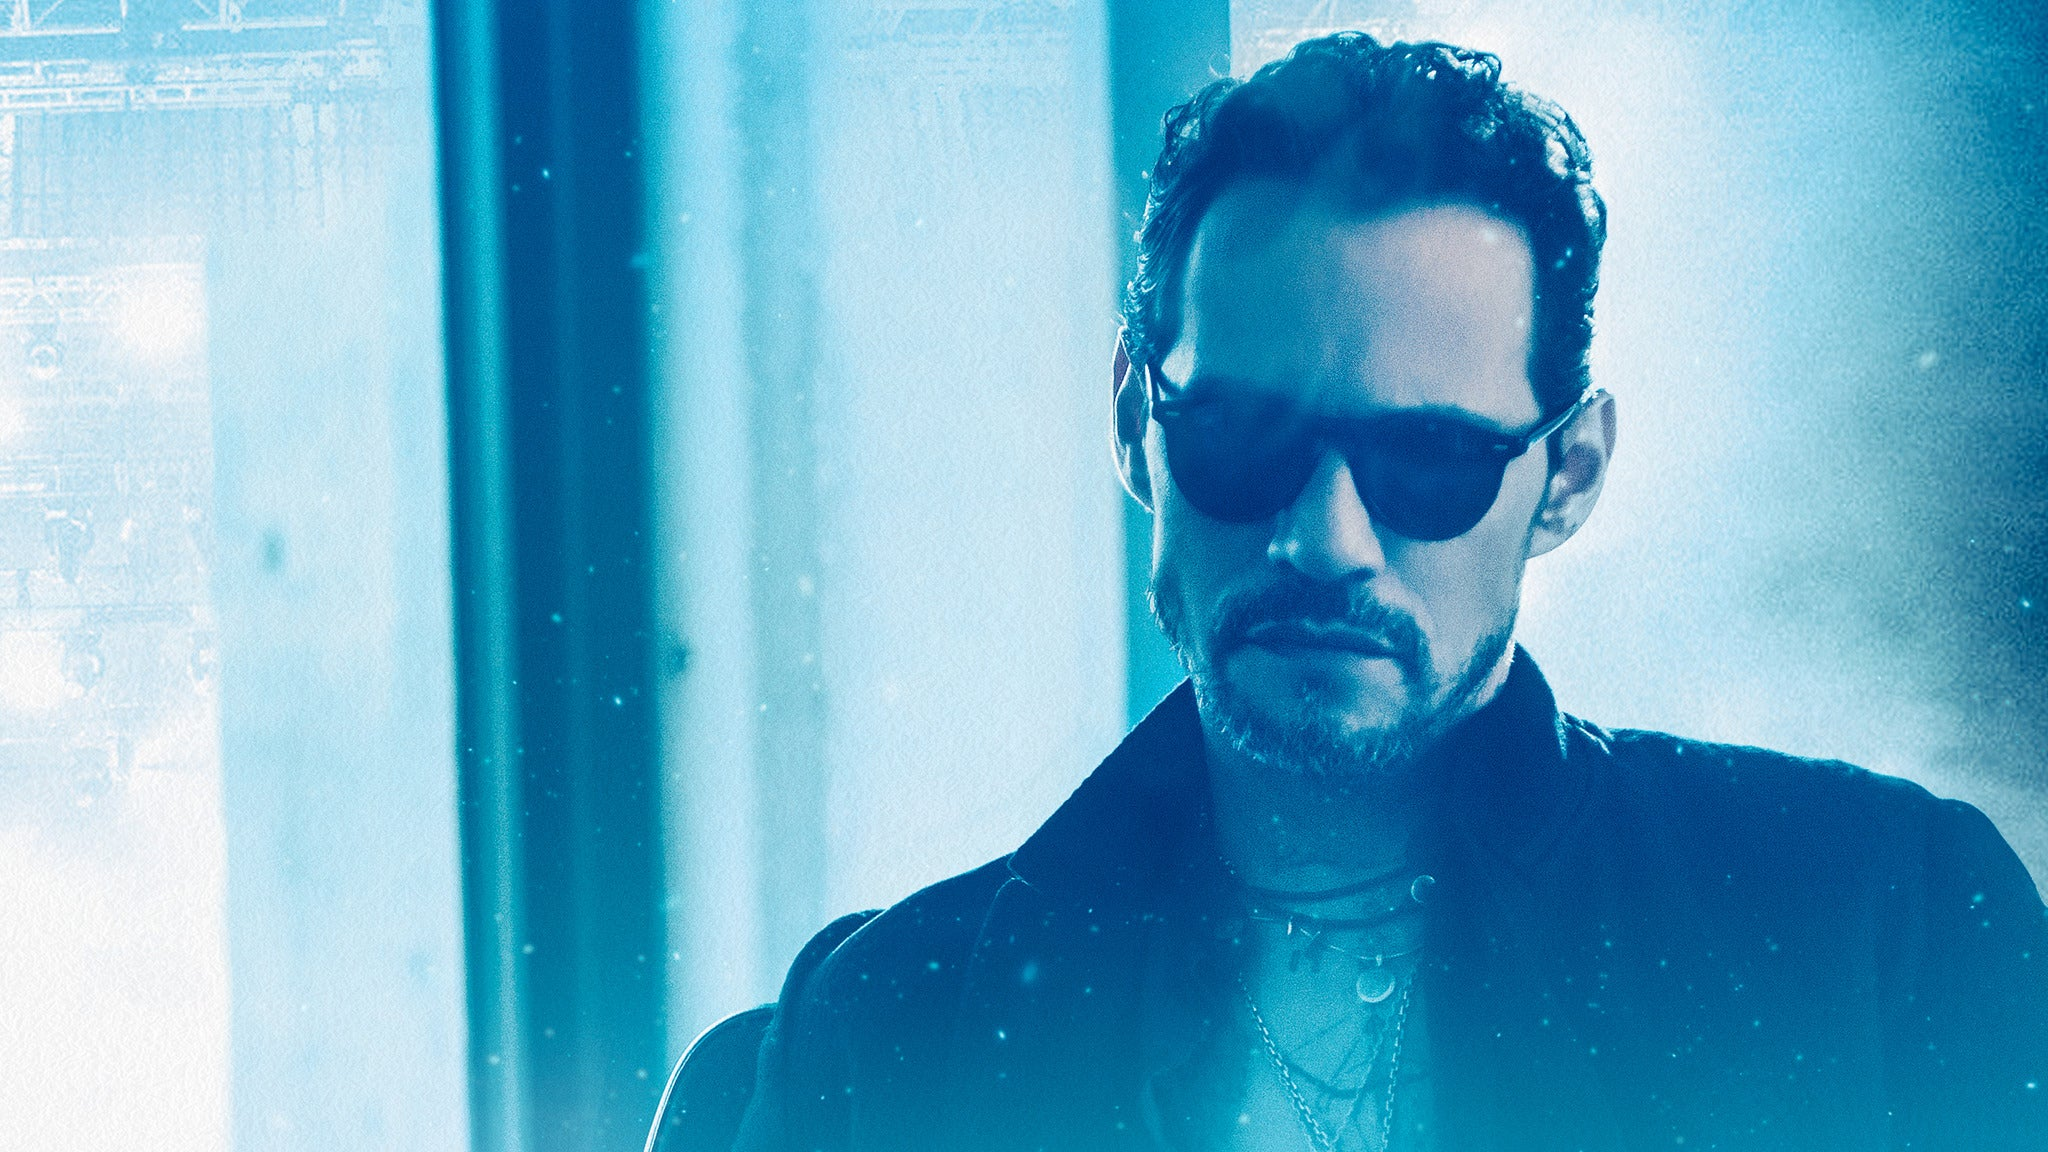 Image used with permission from Ticketmaster | Marc Anthony Tour tickets